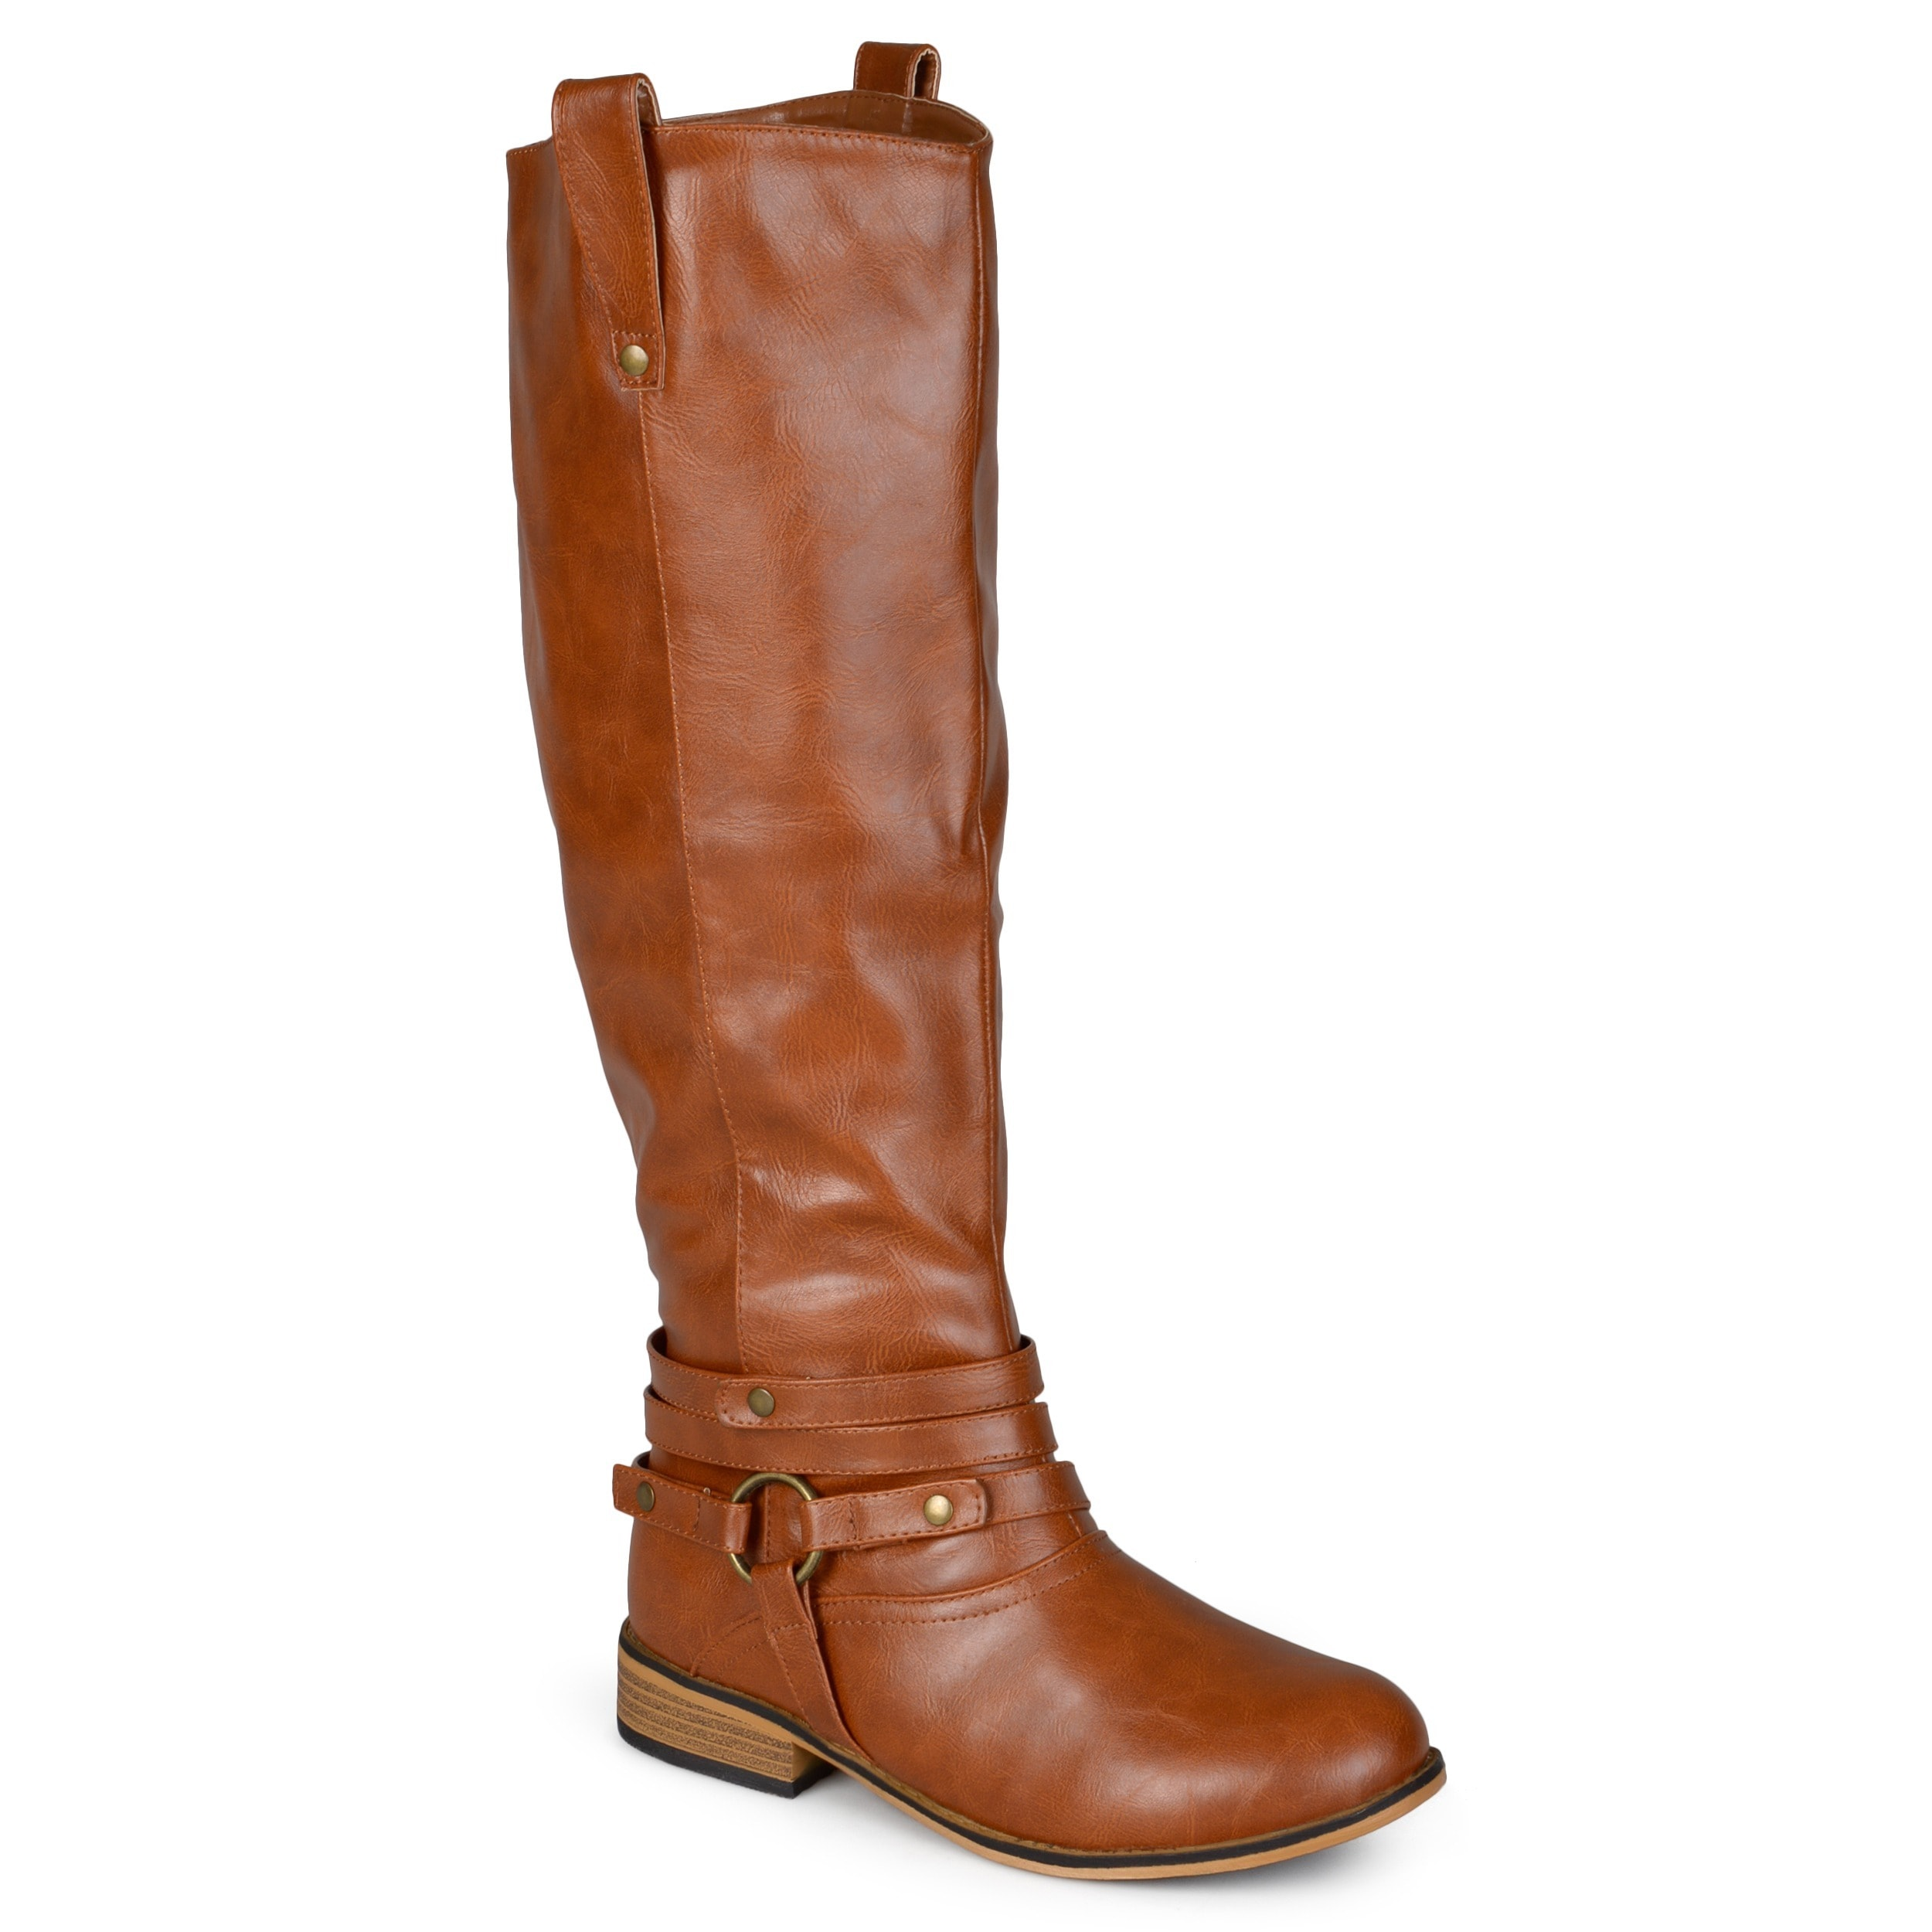 8164d946da8 Journee Collection Women's 'Walla' Regular and Wide-calf Ankle-strap  Knee-high Riding Boot